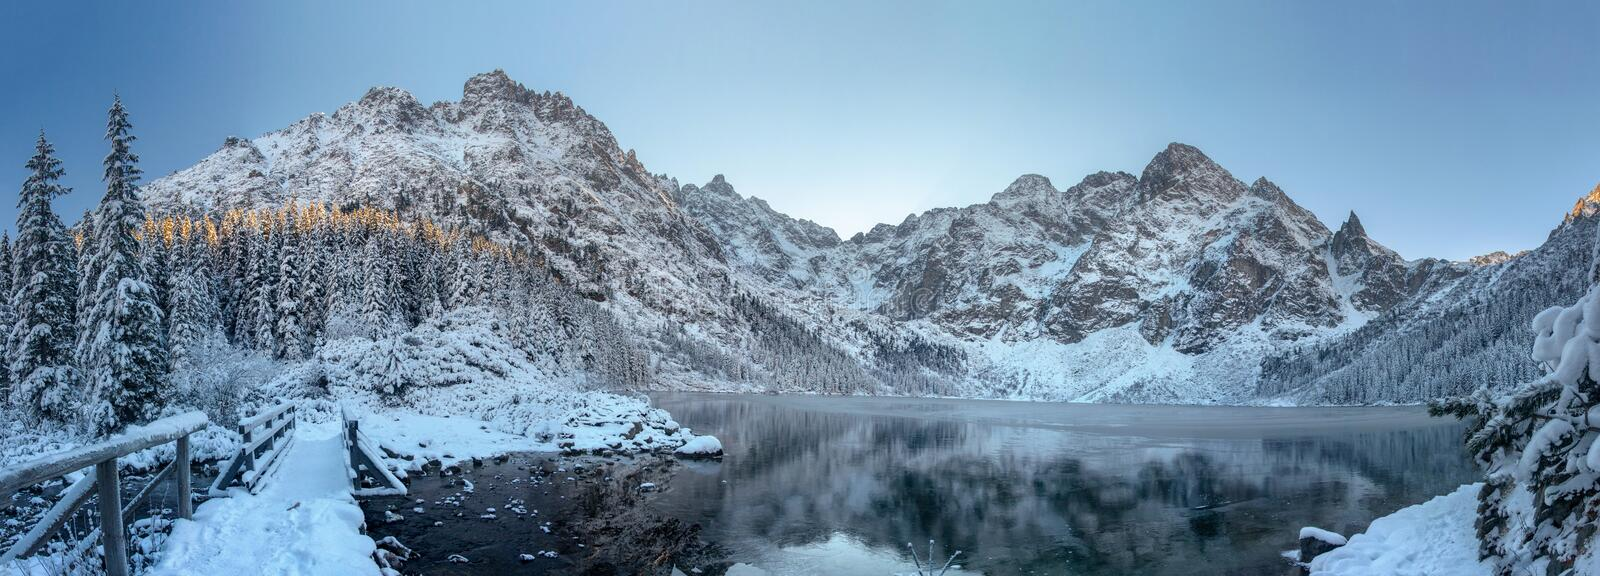 Winter mountains. Scenic frosty mountain landscape. Mountain icy lake. Winter panorama of Tatra mountains in Morskie Oko lake, royalty free stock photography